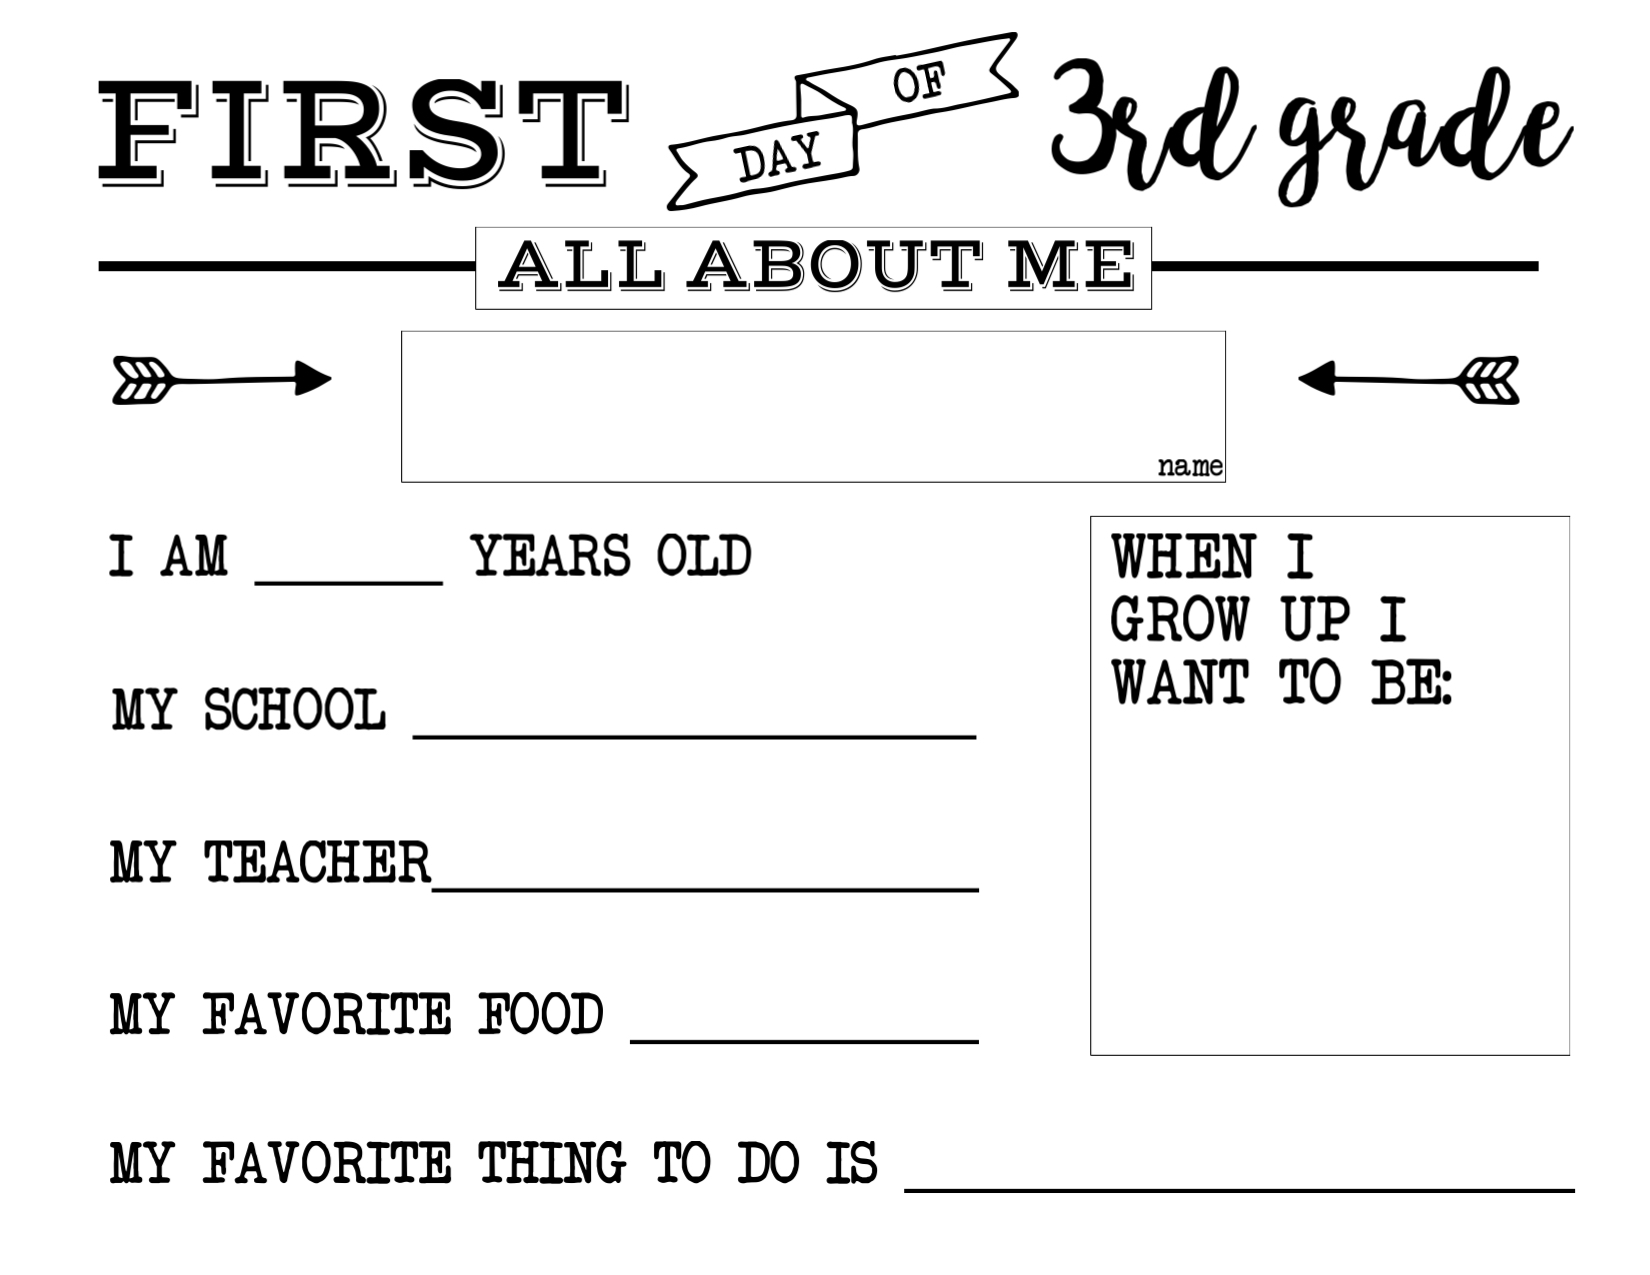 worksheet All About Me Worksheet Free all about me worksheets for 3rd graders worksheet free worksheet